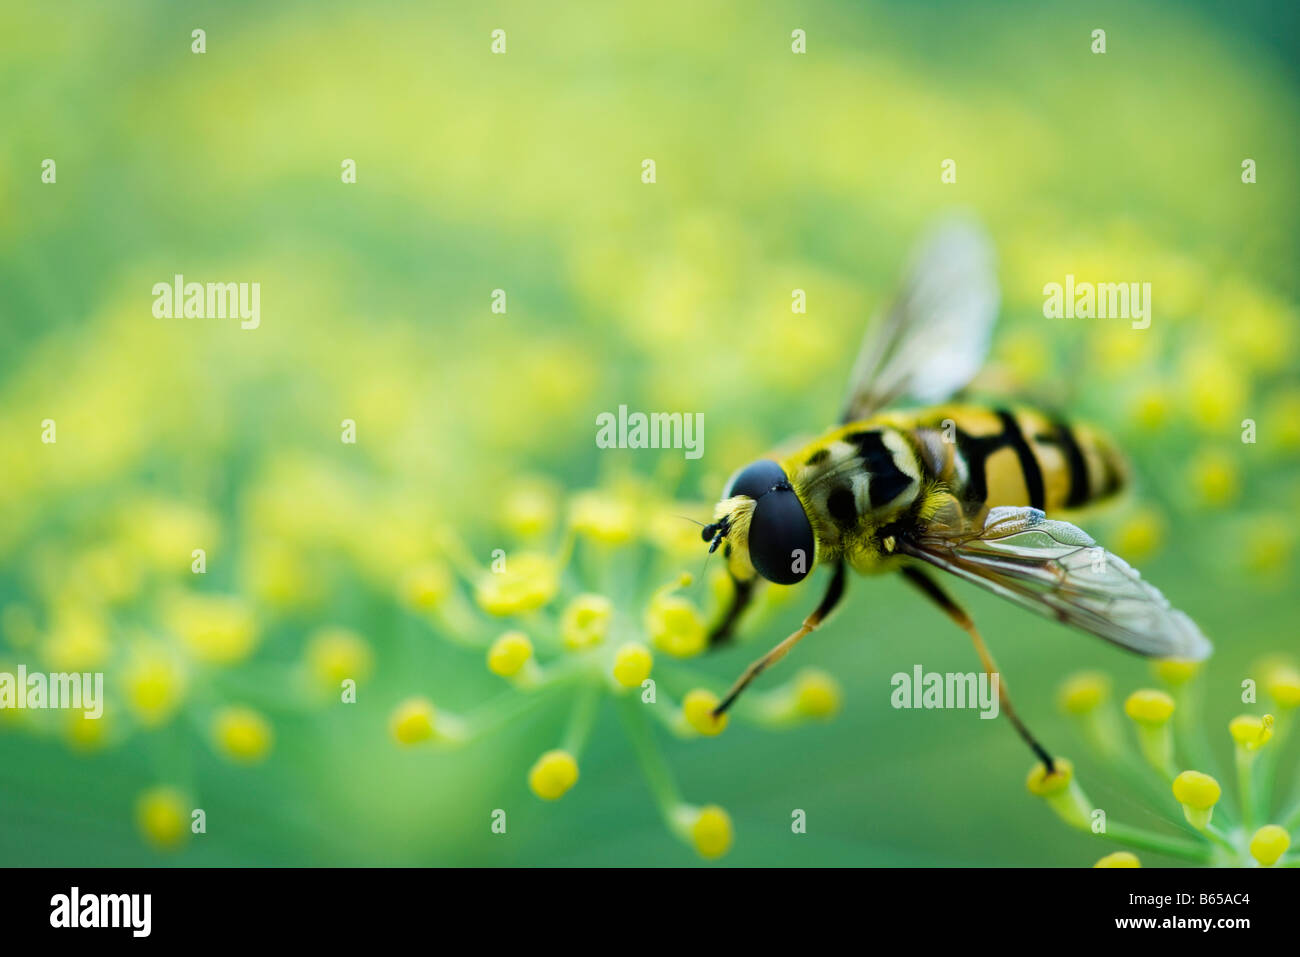 Hoverfly perched on flower head - Stock Image